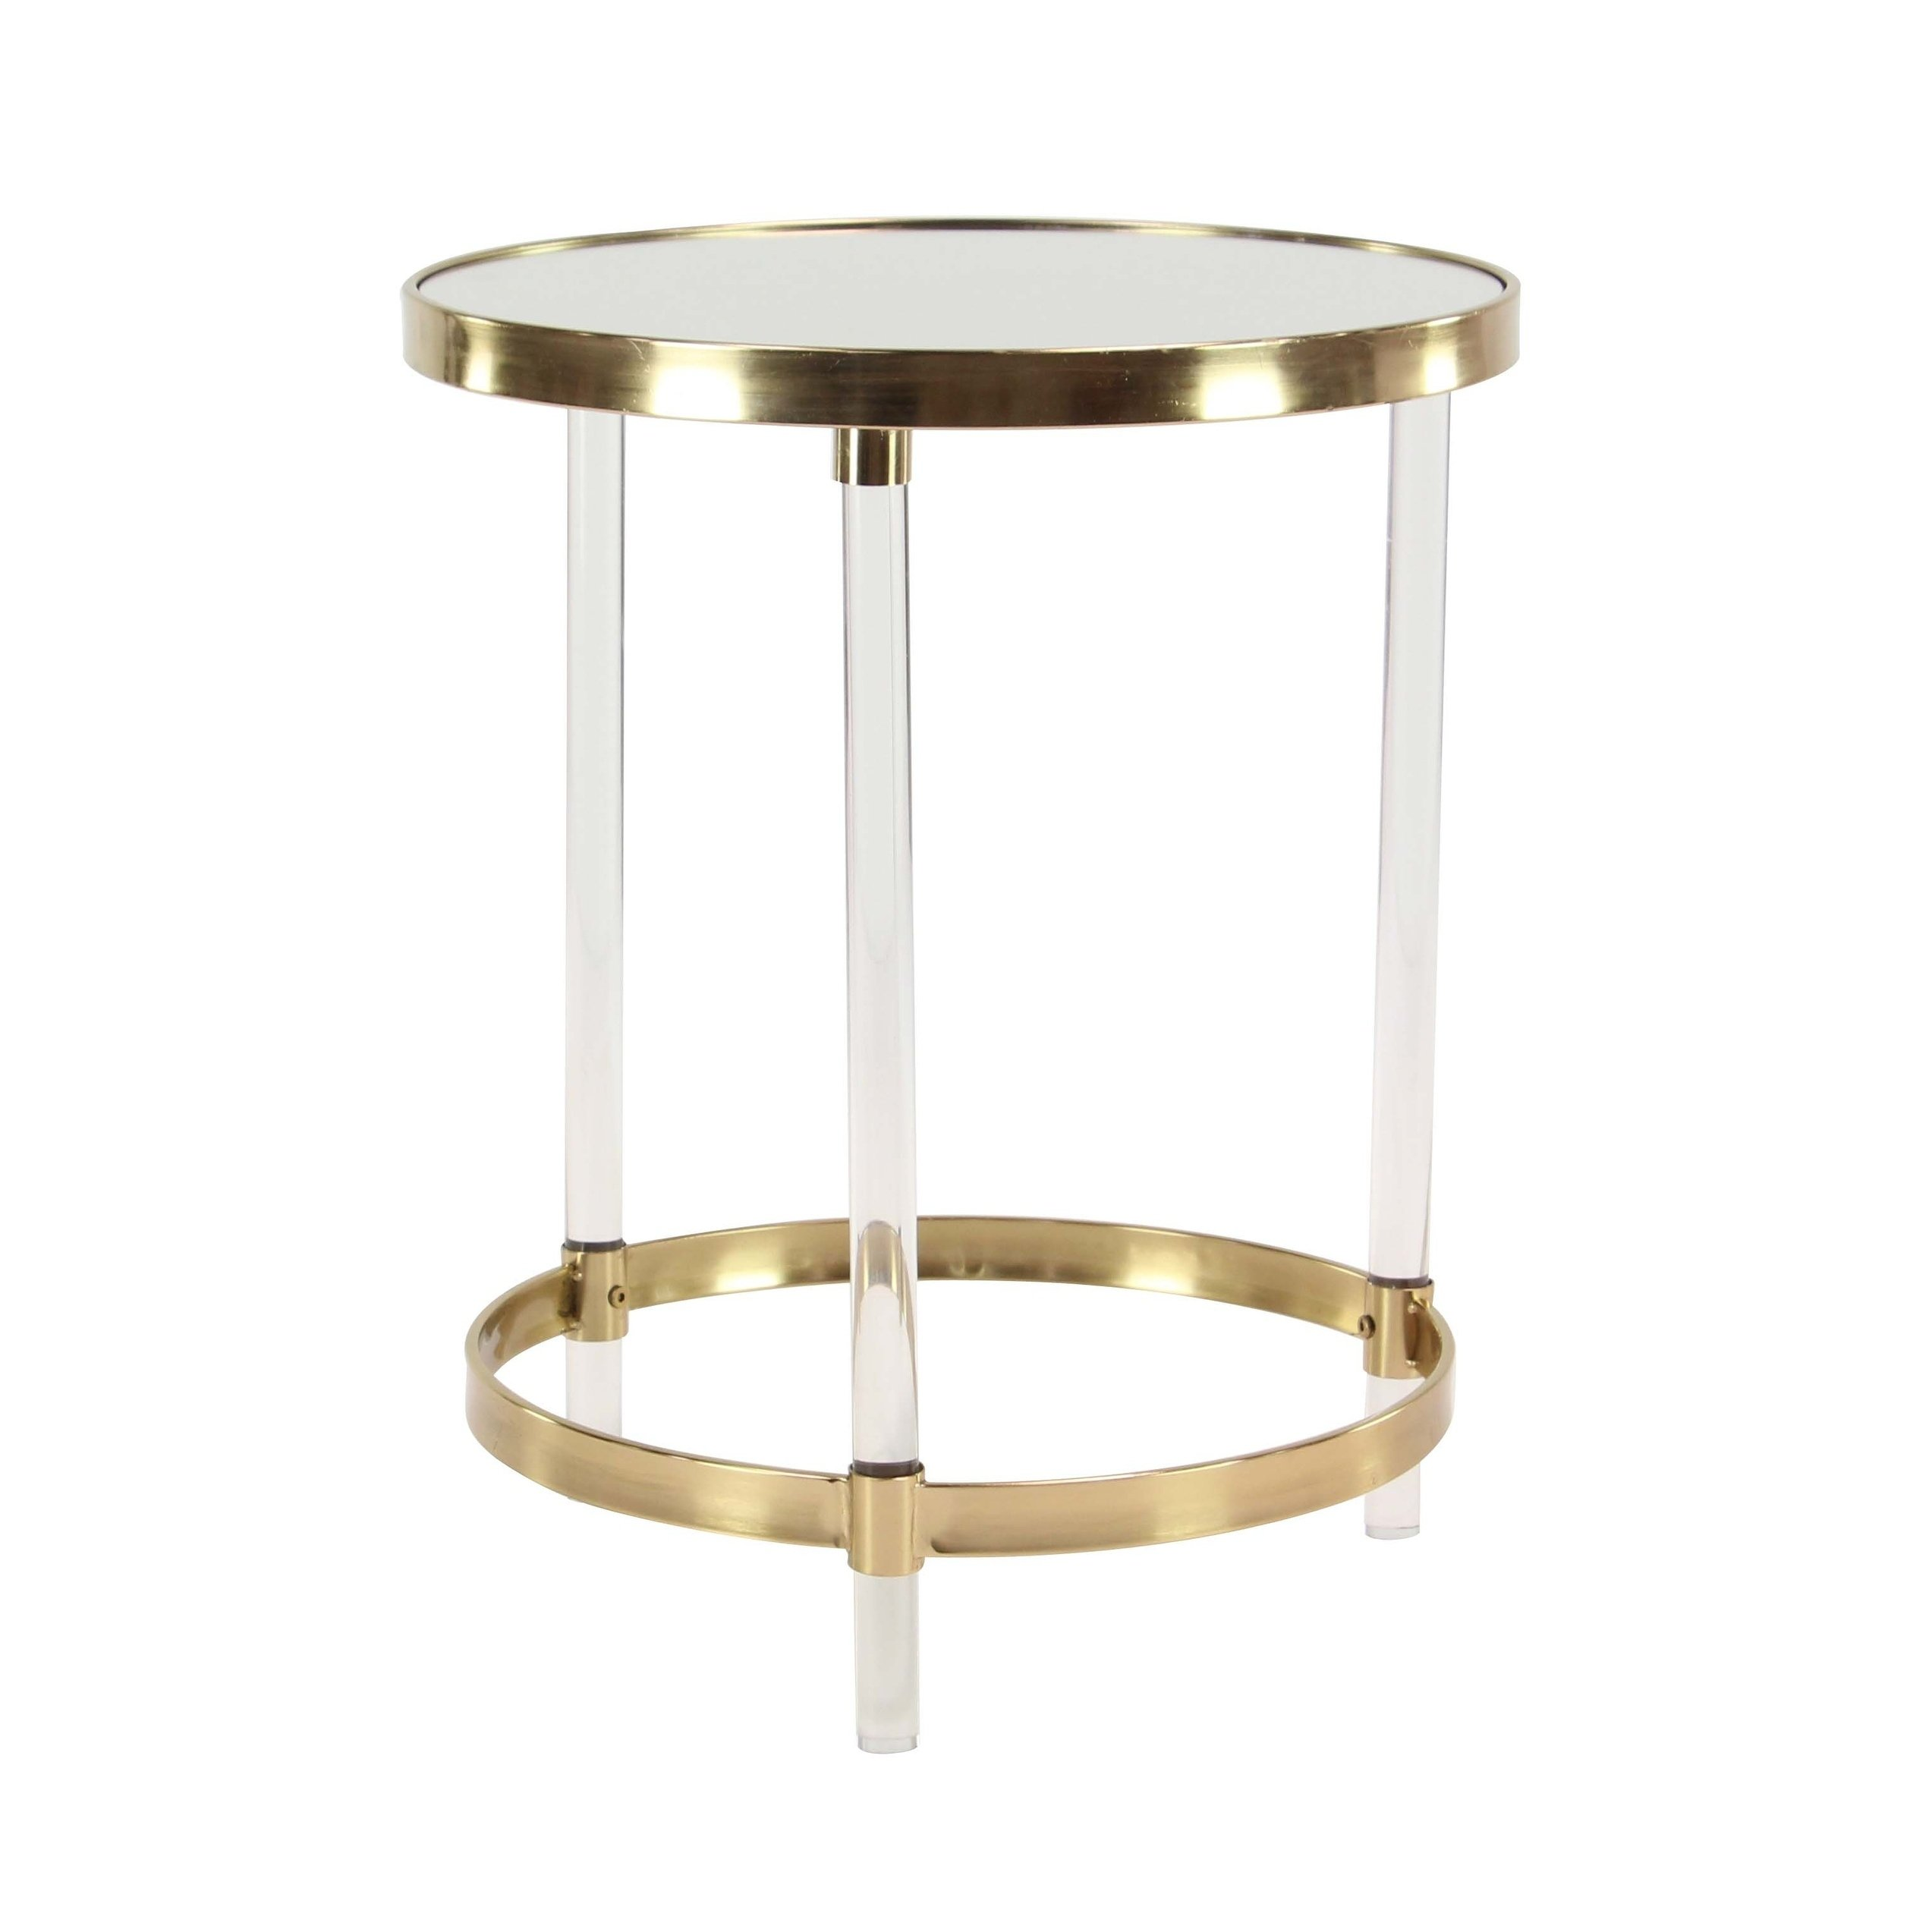 modern inch round iron and acrylic accent table studio free shipping today furniture wellington small patio all glass side coffee legs gold lamp collapsible wooden grill hardwood